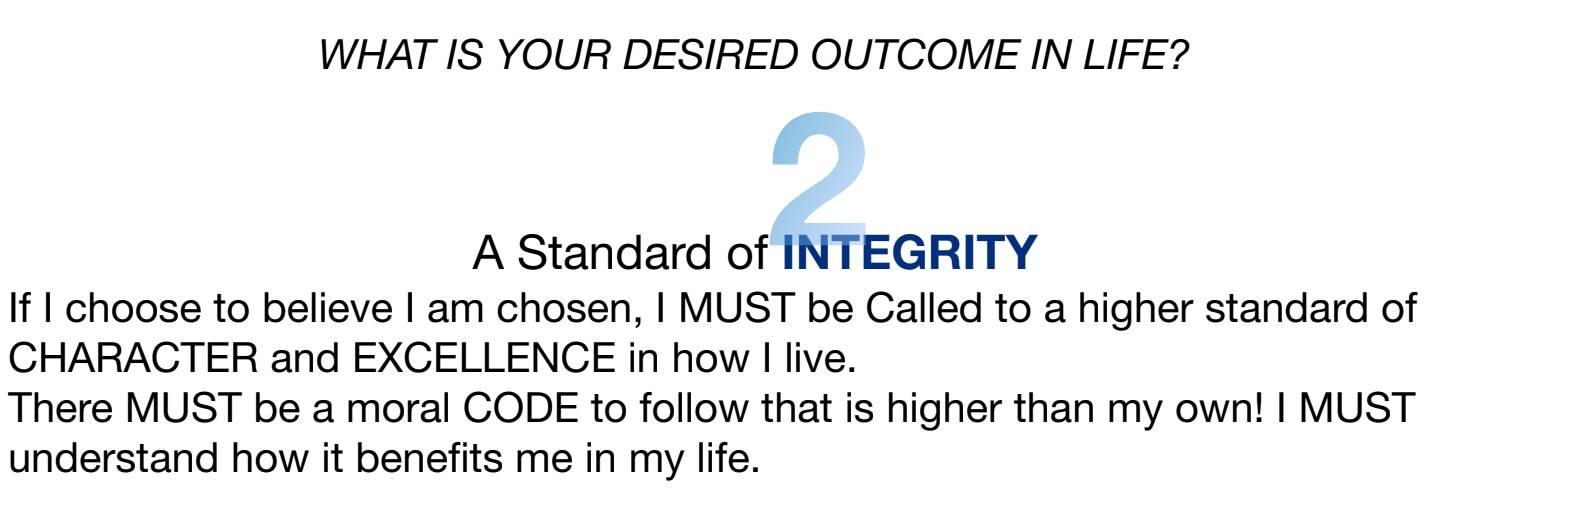 If I choose to believe I am chosen, I MUST be Called to a higher standard of CHARACTER and EXCELLENCE in how I live. There MUST be a moral CODE to follow that is higher than my own! I MUST understand how it benefits me in my life.